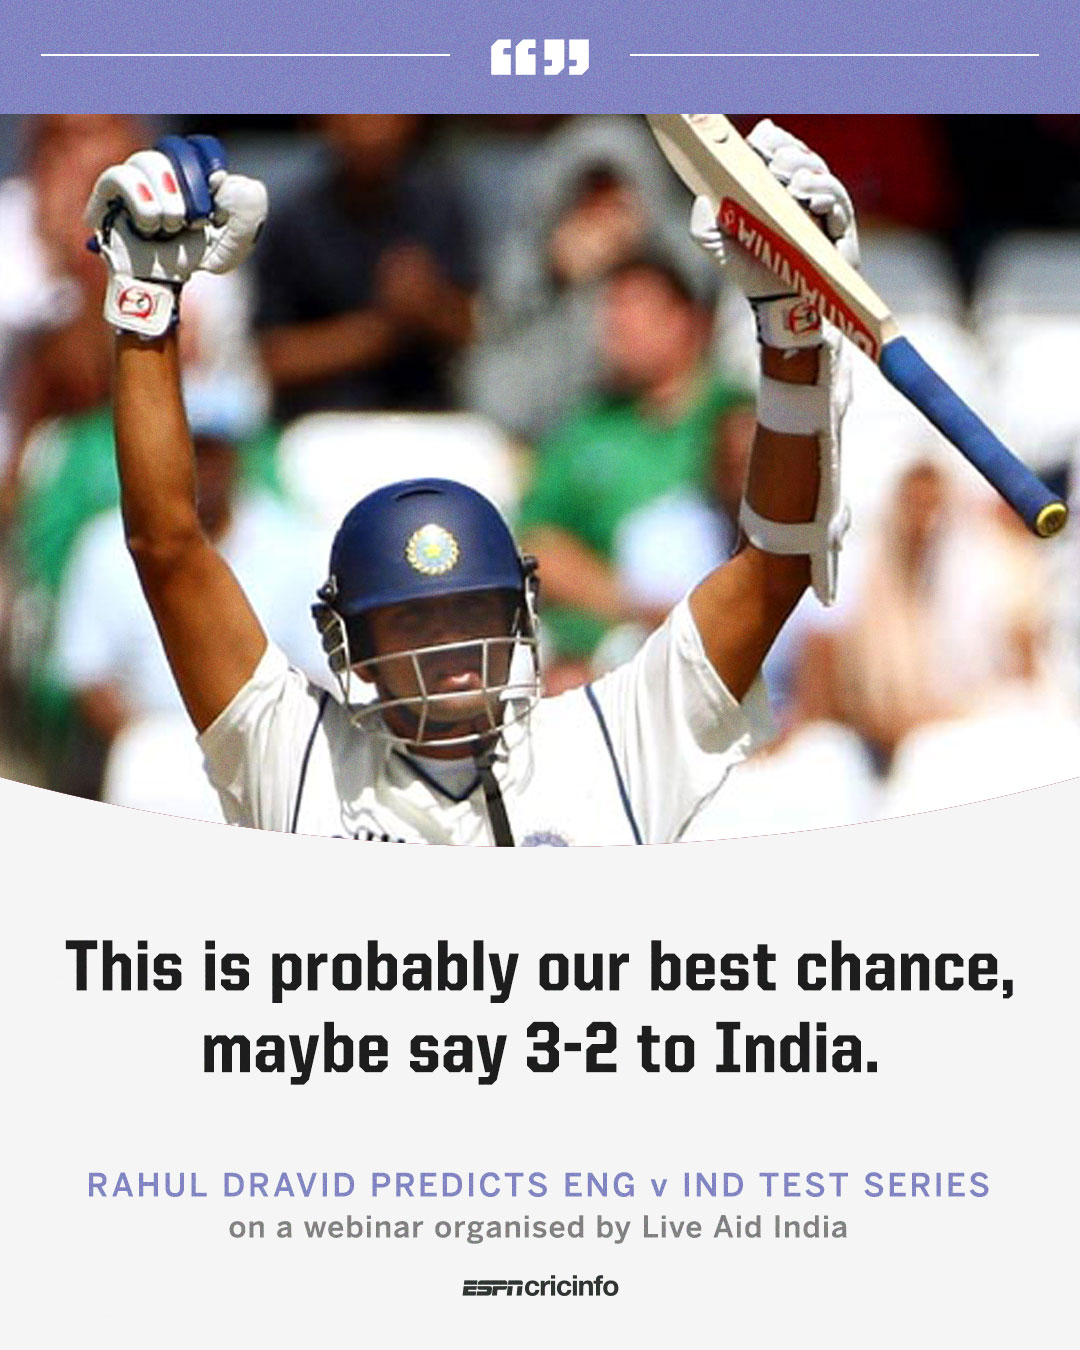 Rahul Dravid predicts 3-2 scoreline in Indias best chance to win in England Photo